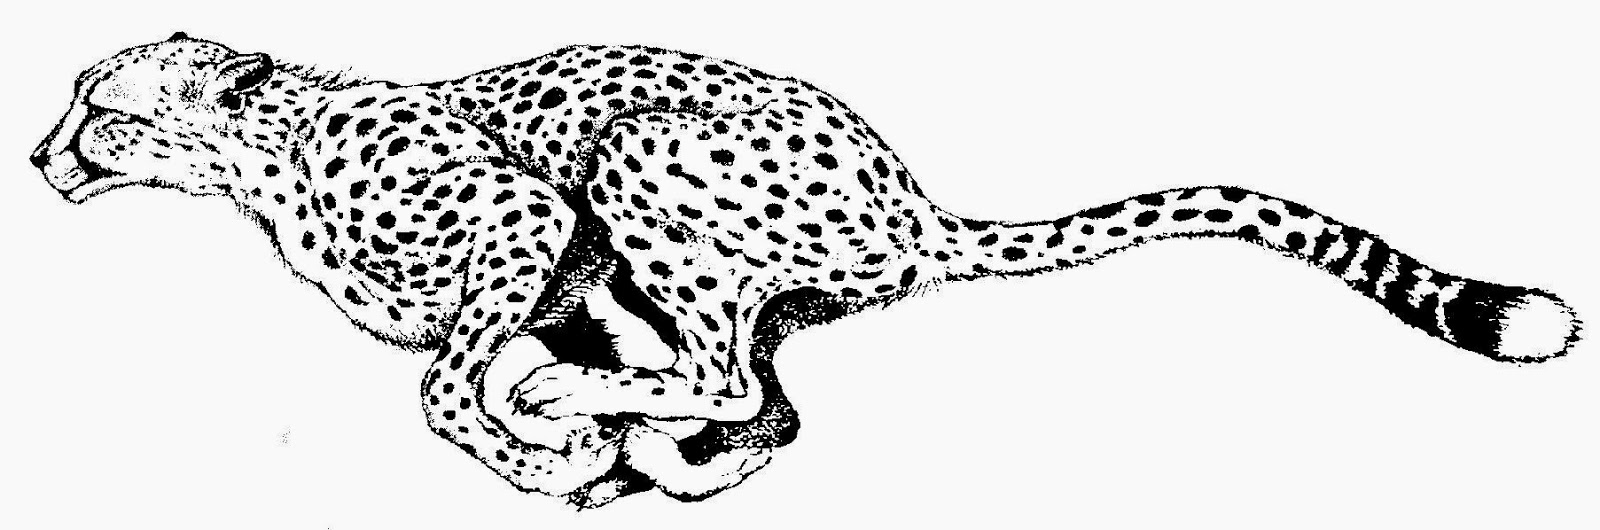 Cheetah clipart Cheetah clipart kid 2 black